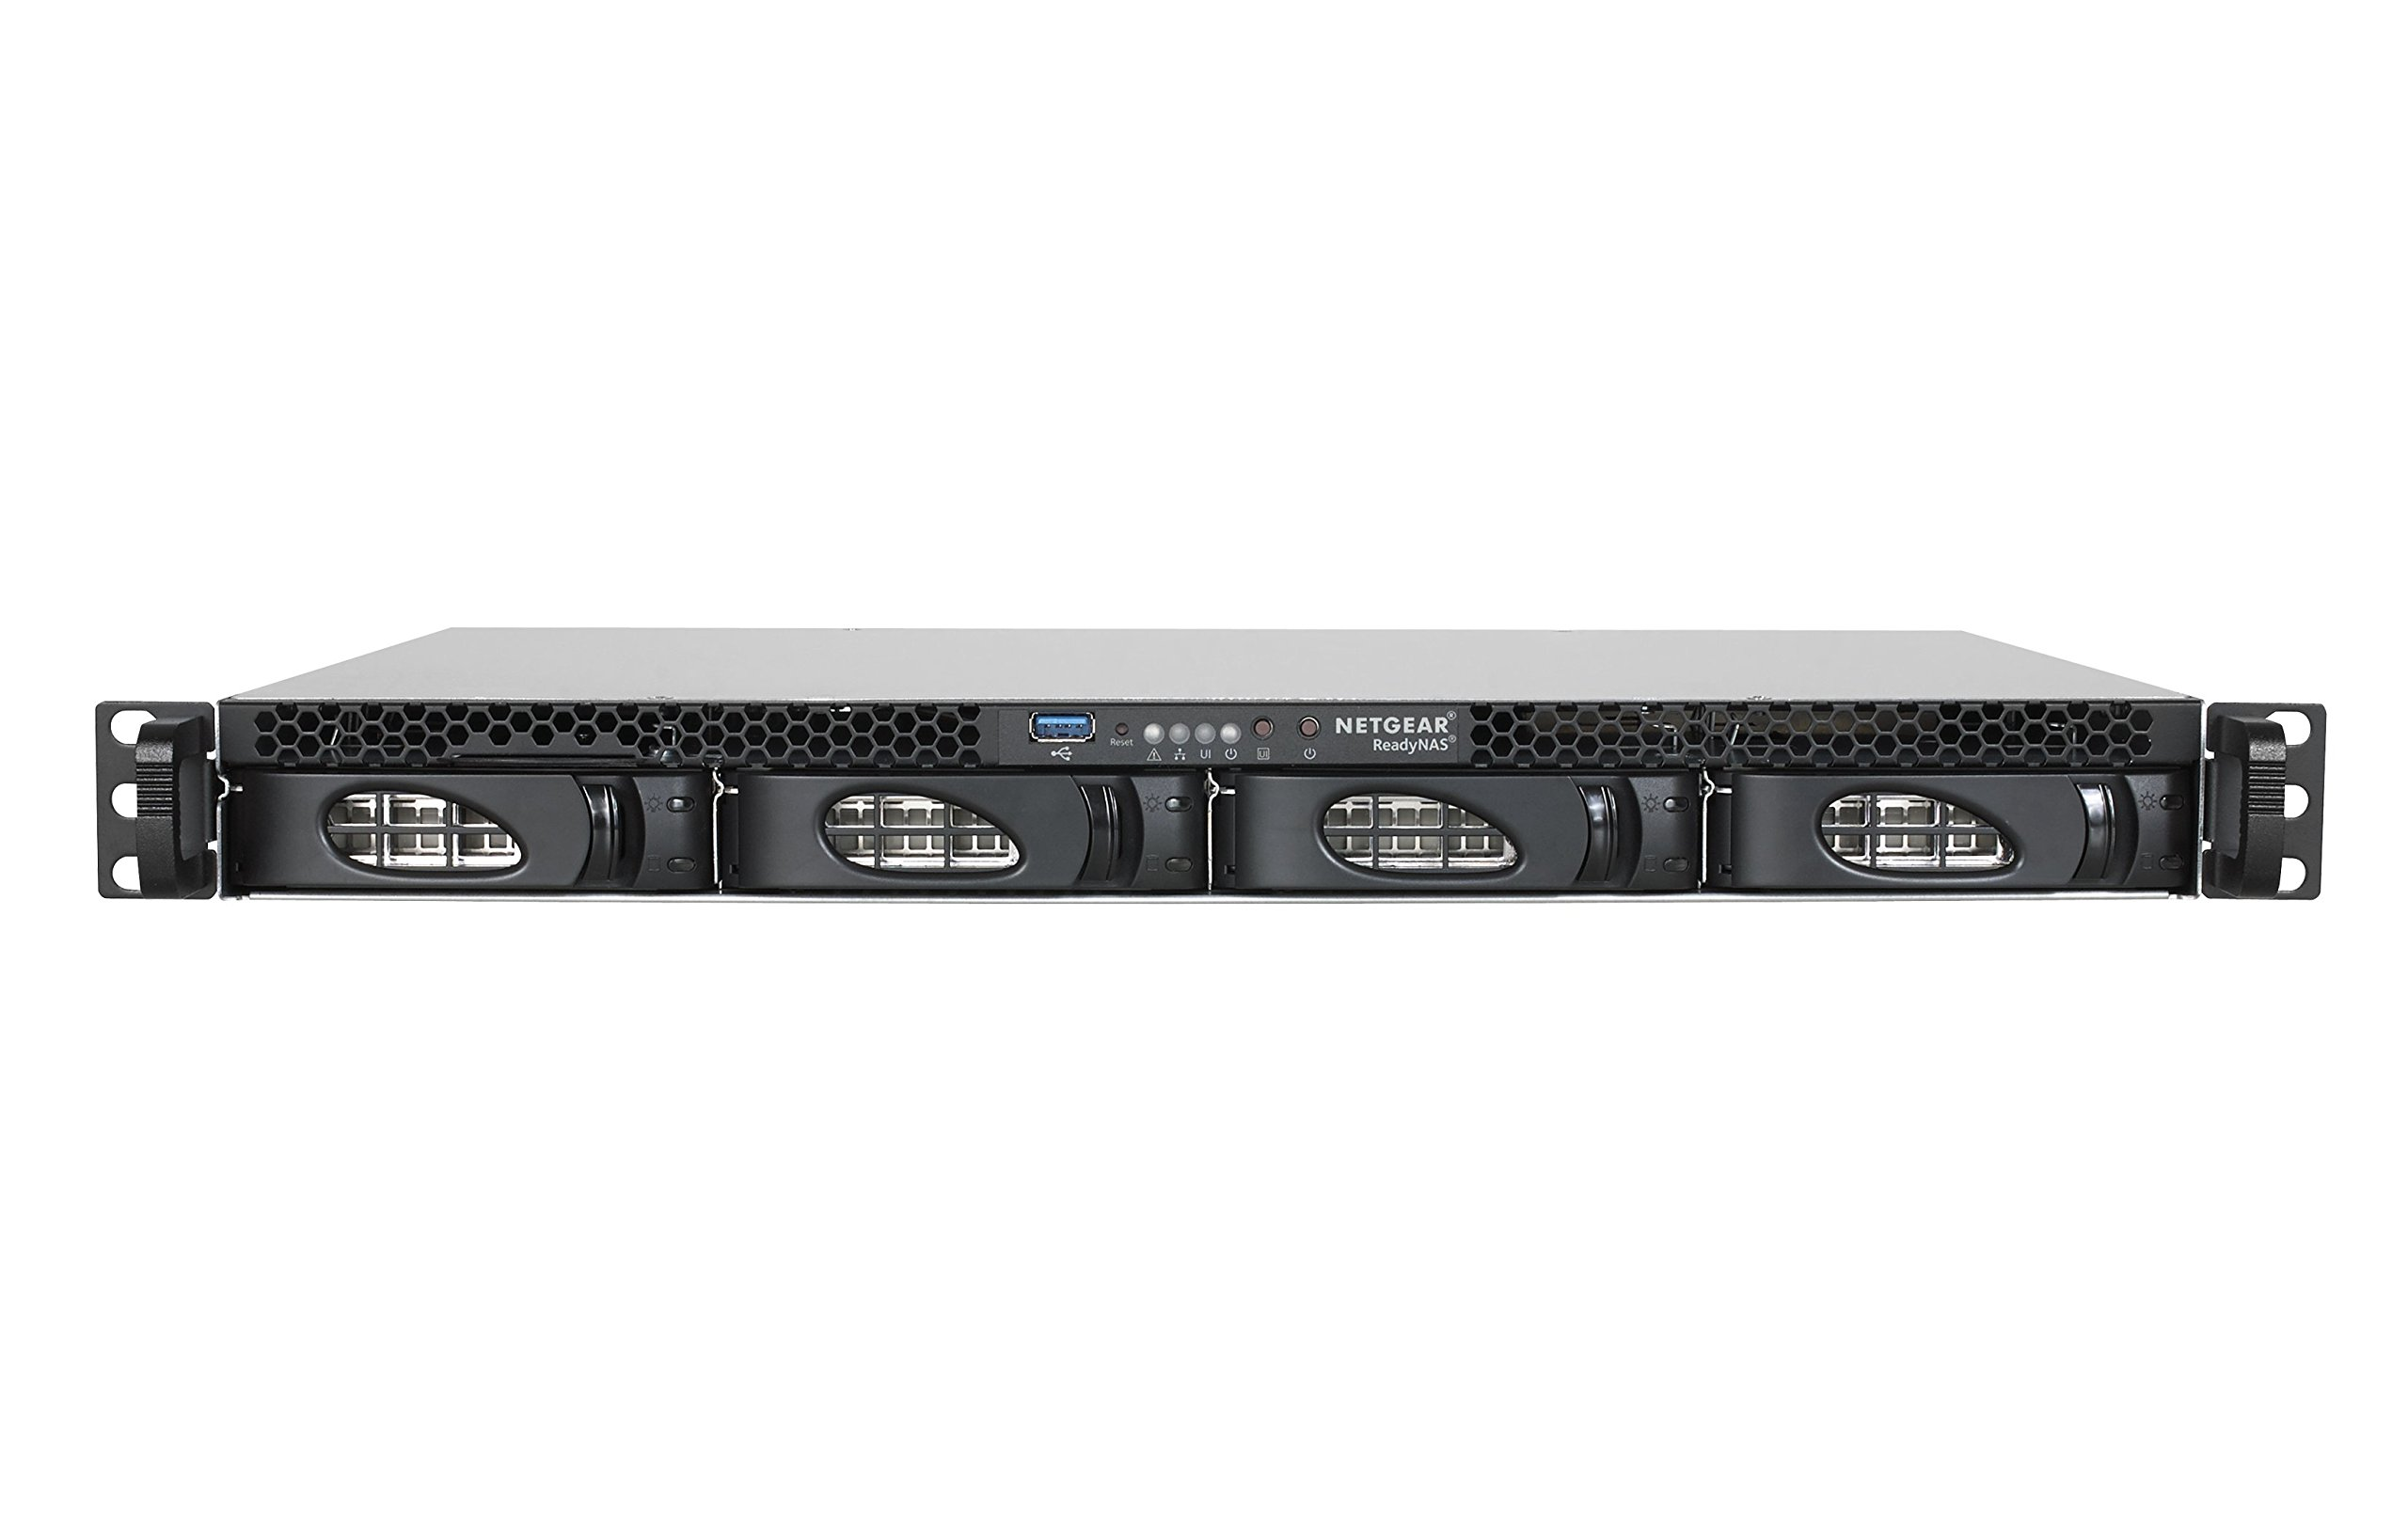 NETGEAR ReadyNAS 2304, Rackmount 1U 4-bay, Dual Gigabit Ethernet, Diskless (RR230400) 2 1U 4-bay compact form factor for branch offices and small businesses Make a leap forward in data storage with a professional grade NAS, designed in-house by the market leader in SMB networking Easy monitoring and maintenance with NETGEAR Insight app